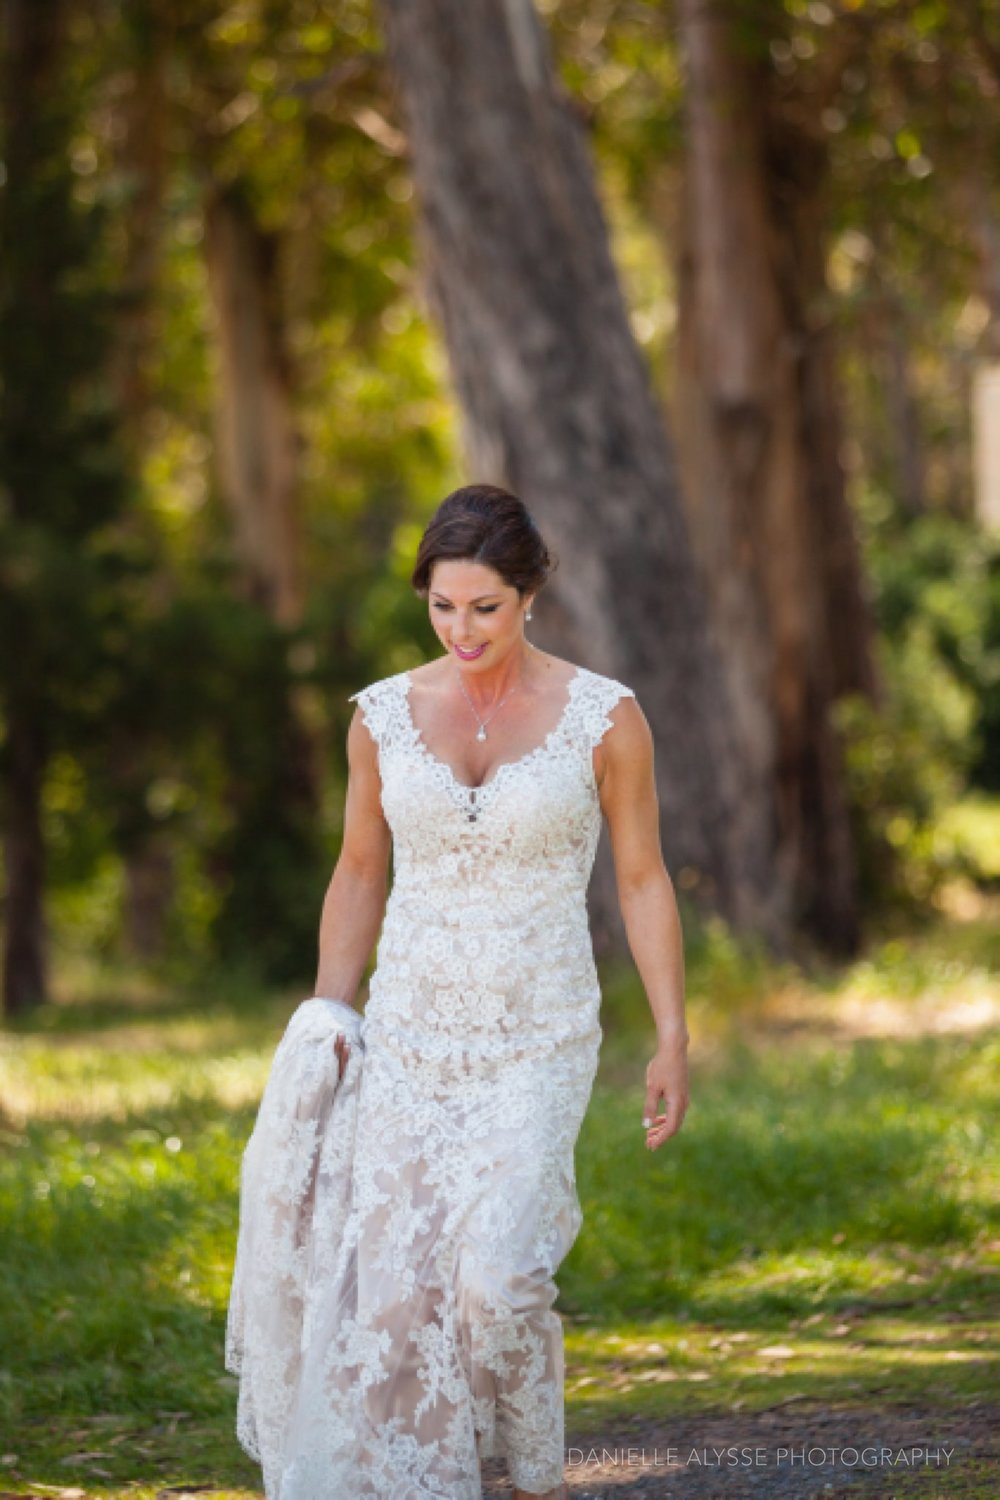 170429_blog_kimberly_ben_wedding_san_mateo_curiodyssey_danielle_alysse_photography_sacramento_photographer0143_WEB.jpg